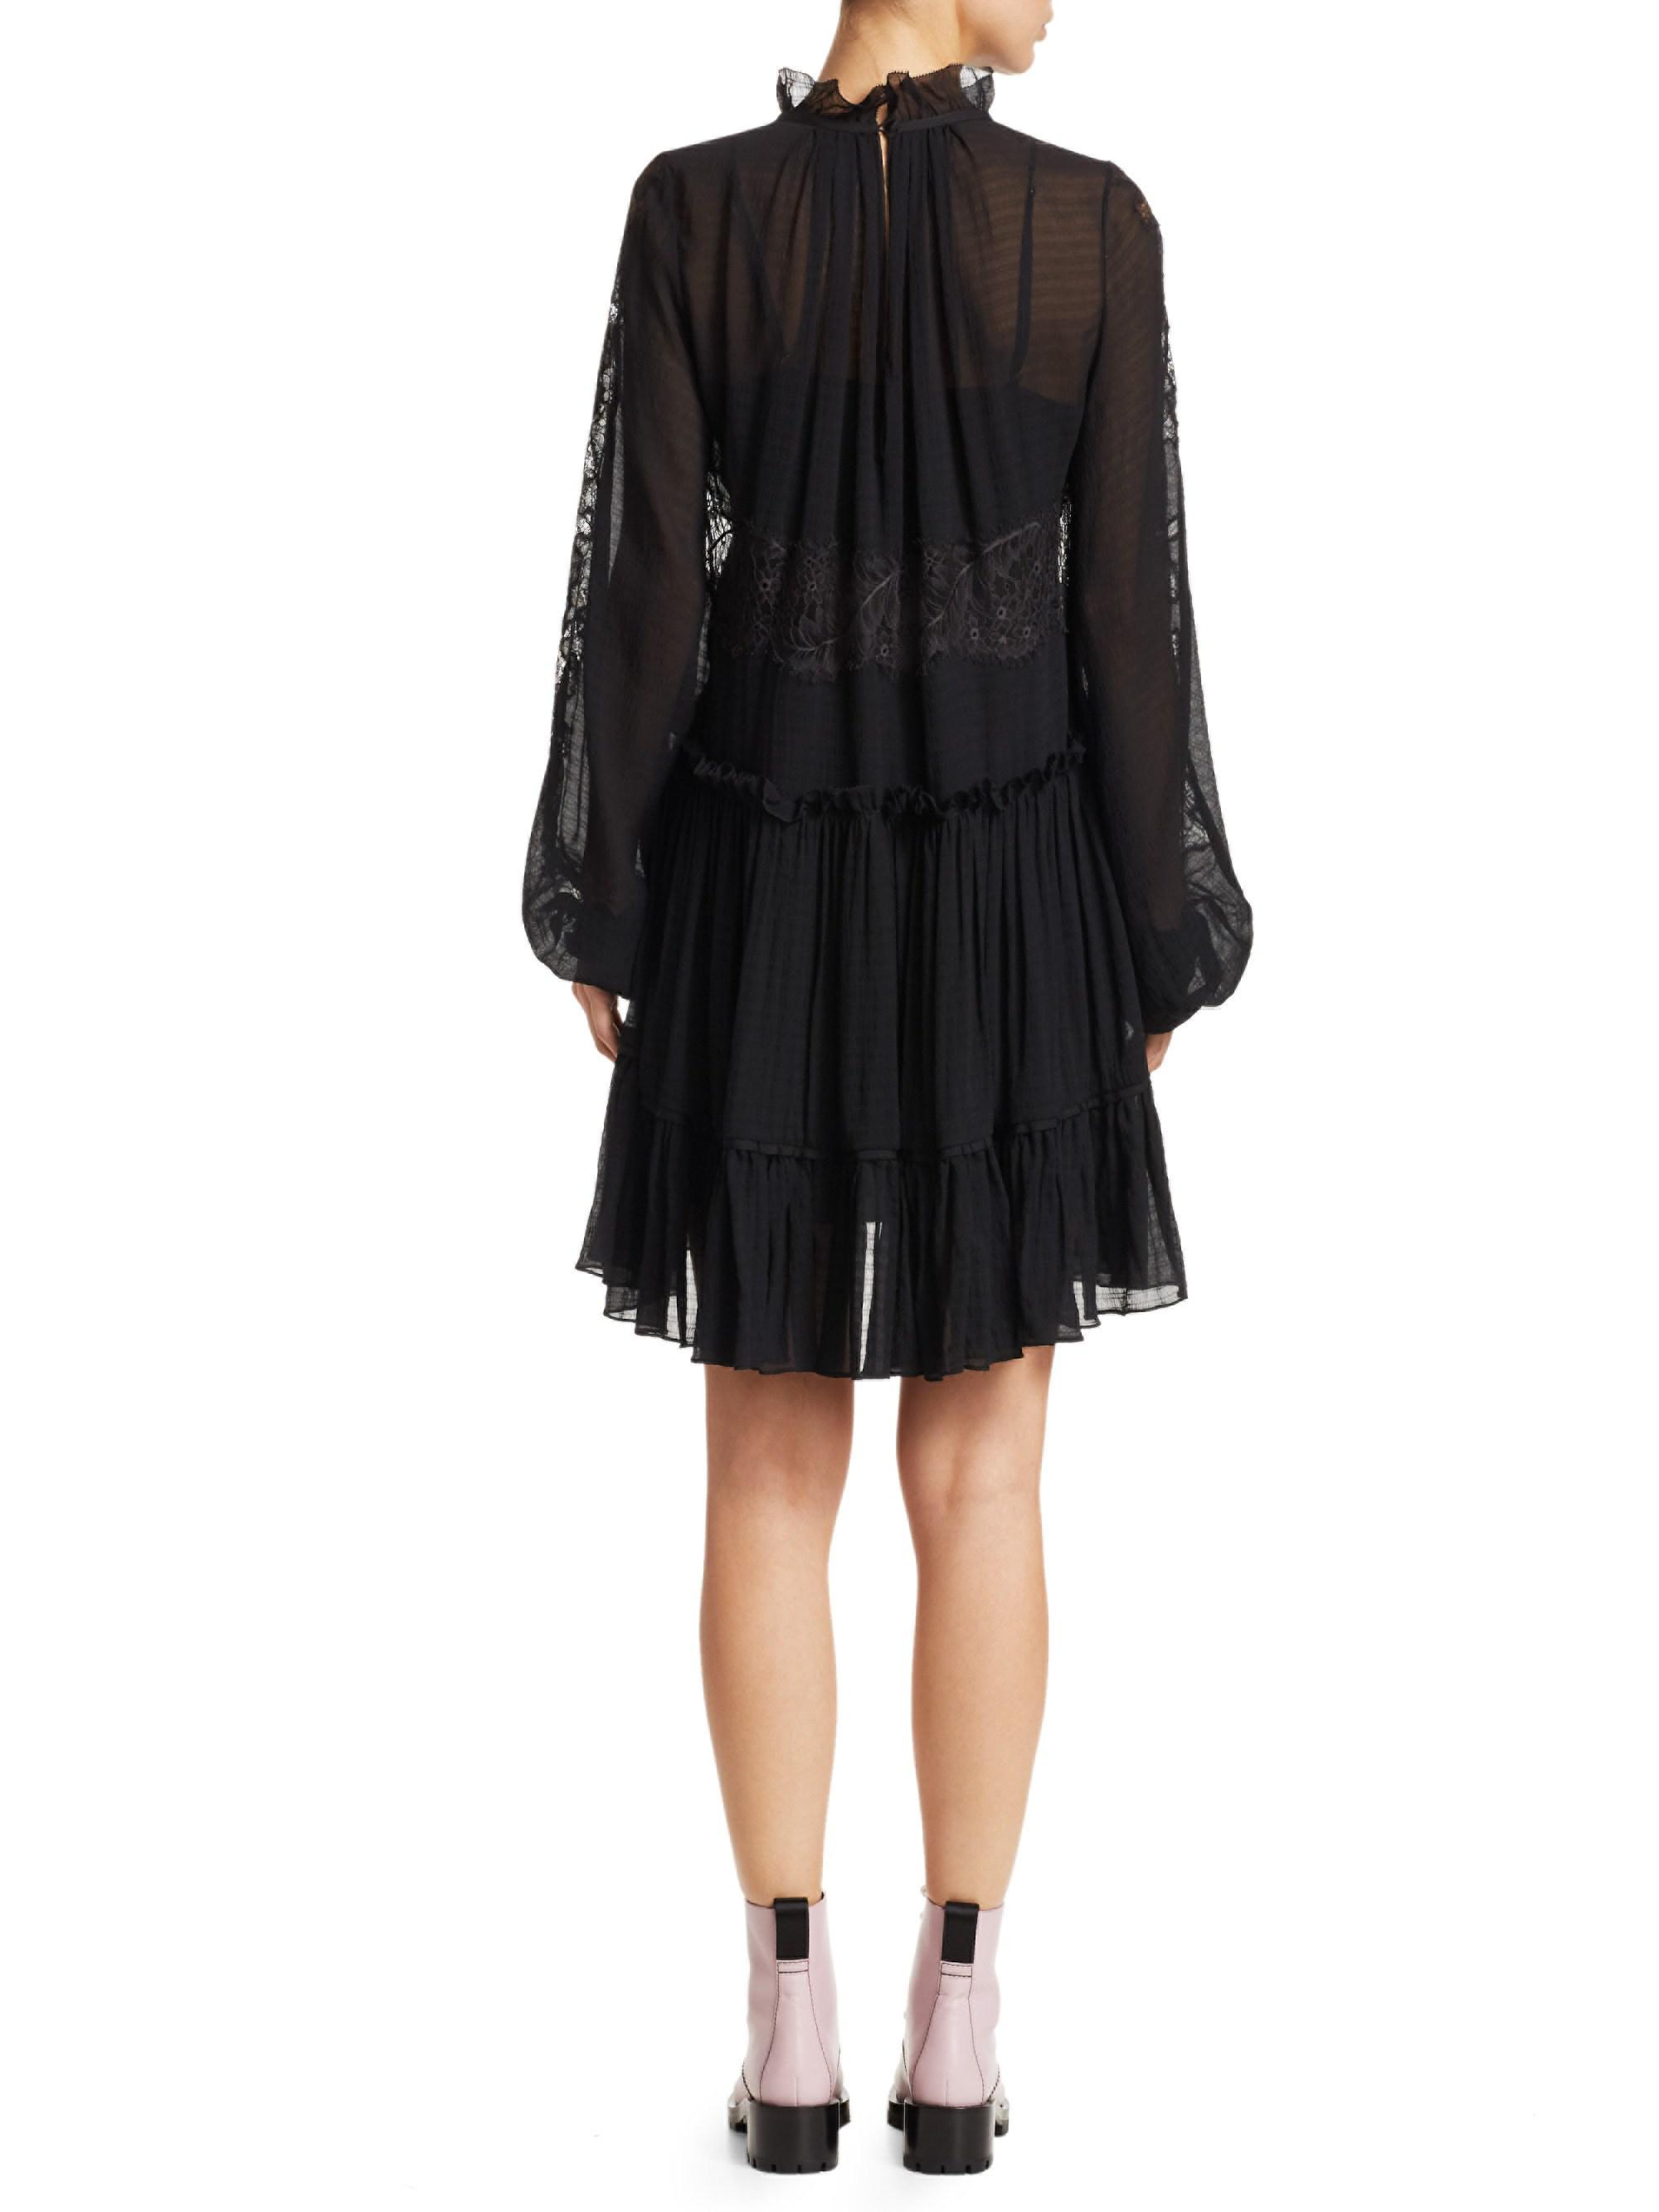 3.1 Phillip Lim - Black Lace   Stretch-silk Flounce Dress - Lyst. View  fullscreen e286459a0